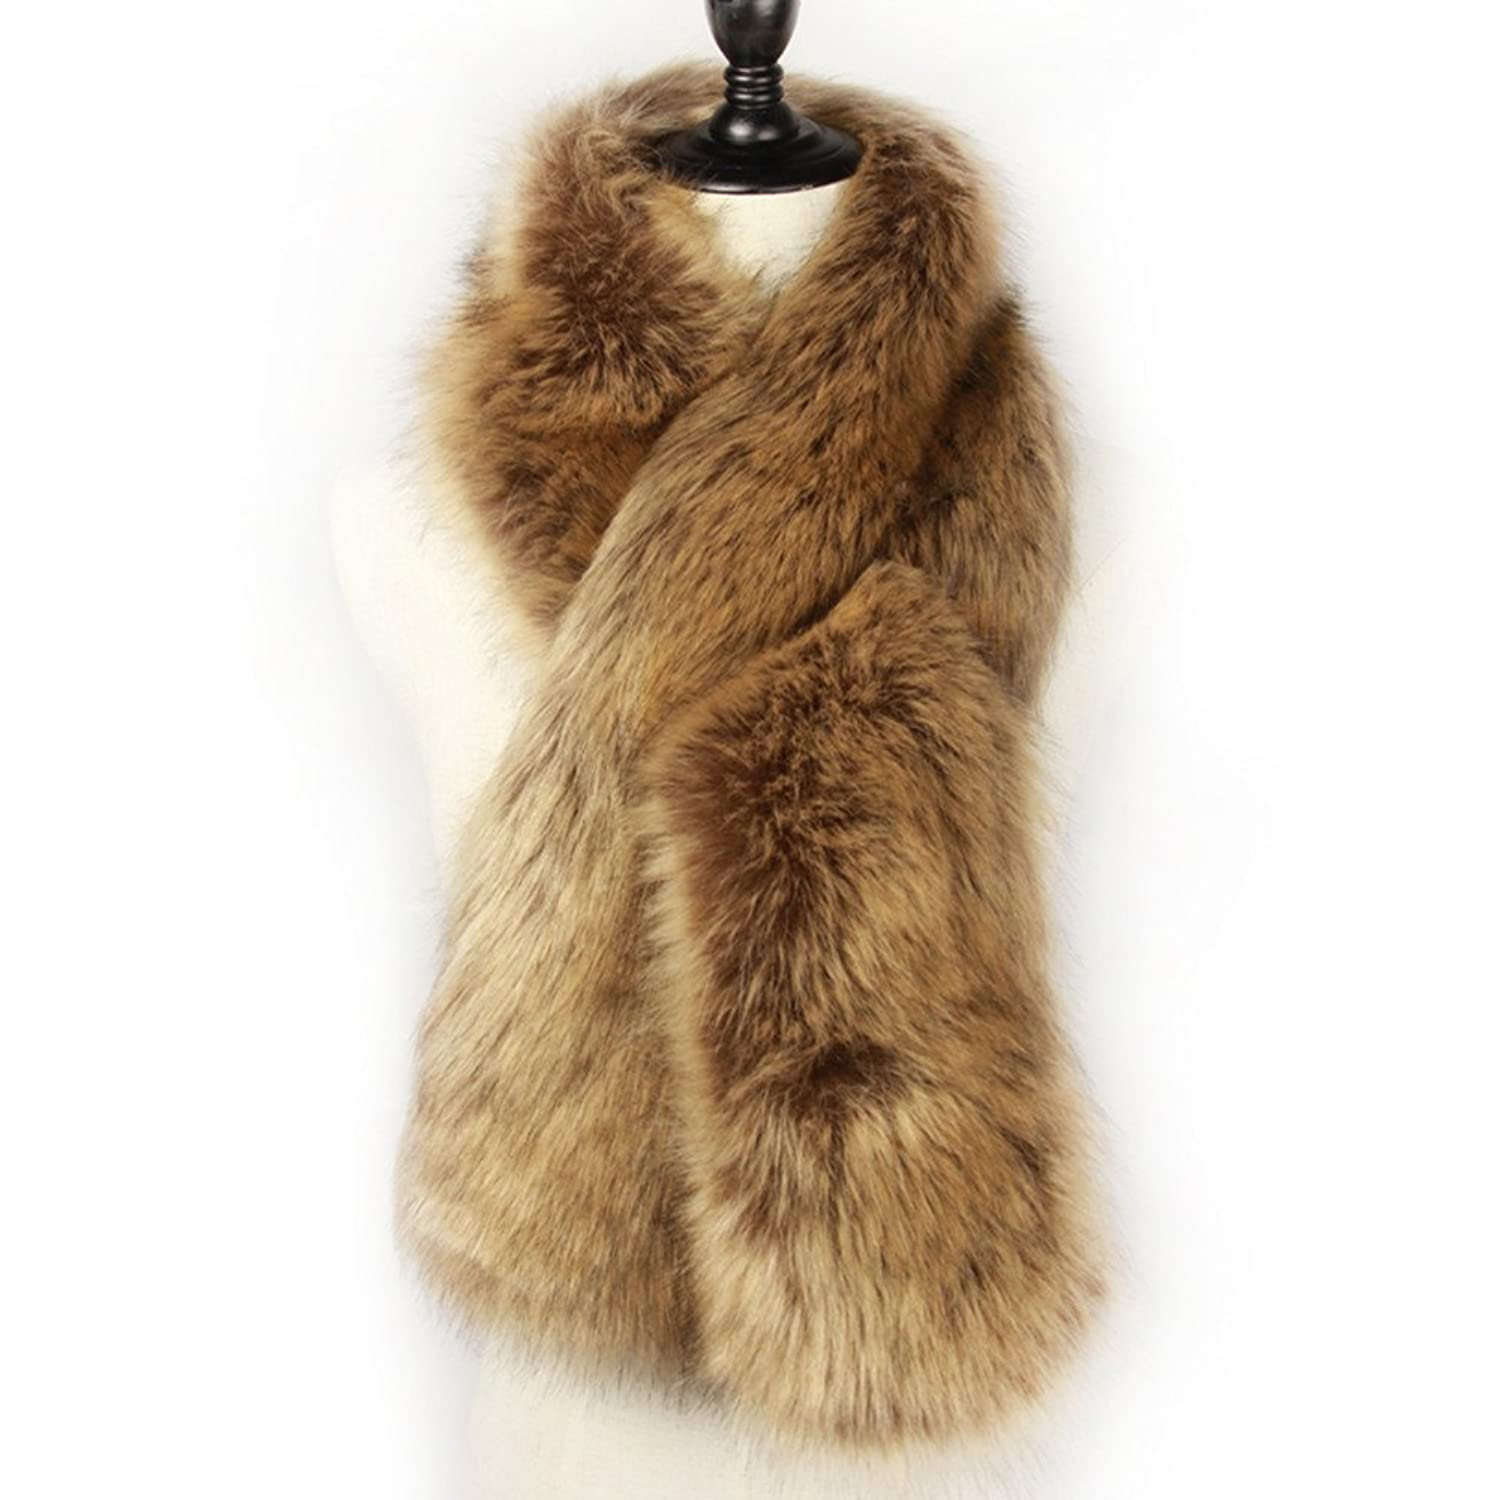 Vintage Scarves- New in the 1920s to 1960s Styles  Faux Fur Scarf Wrap Collar Shawl Shrug $15.99 AT vintagedancer.com